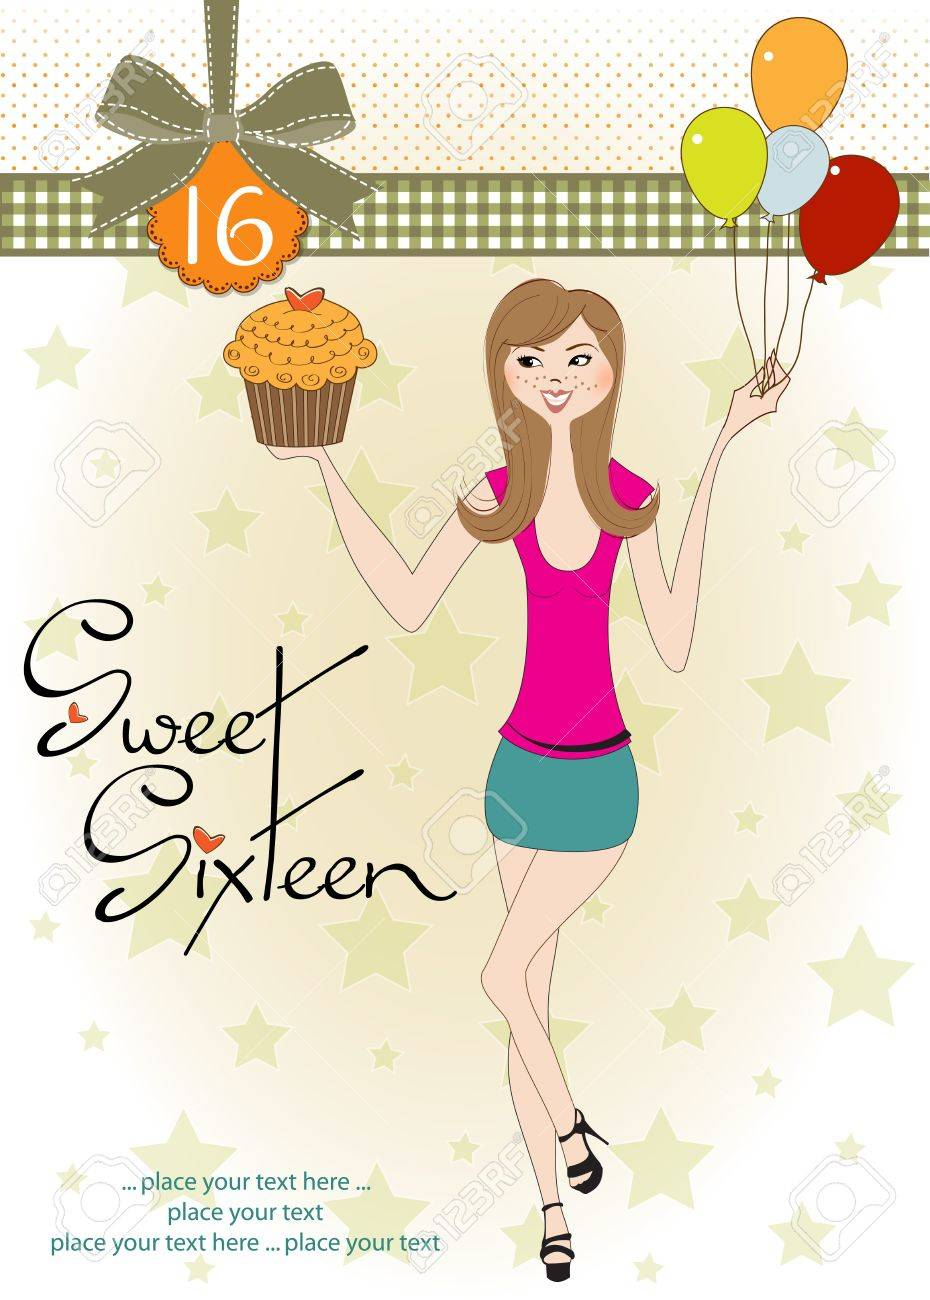 Sweet Sixteen Birthday Card With Young Girl Royalty Free Cliparts – Sweet Sixteen Birthday Greetings